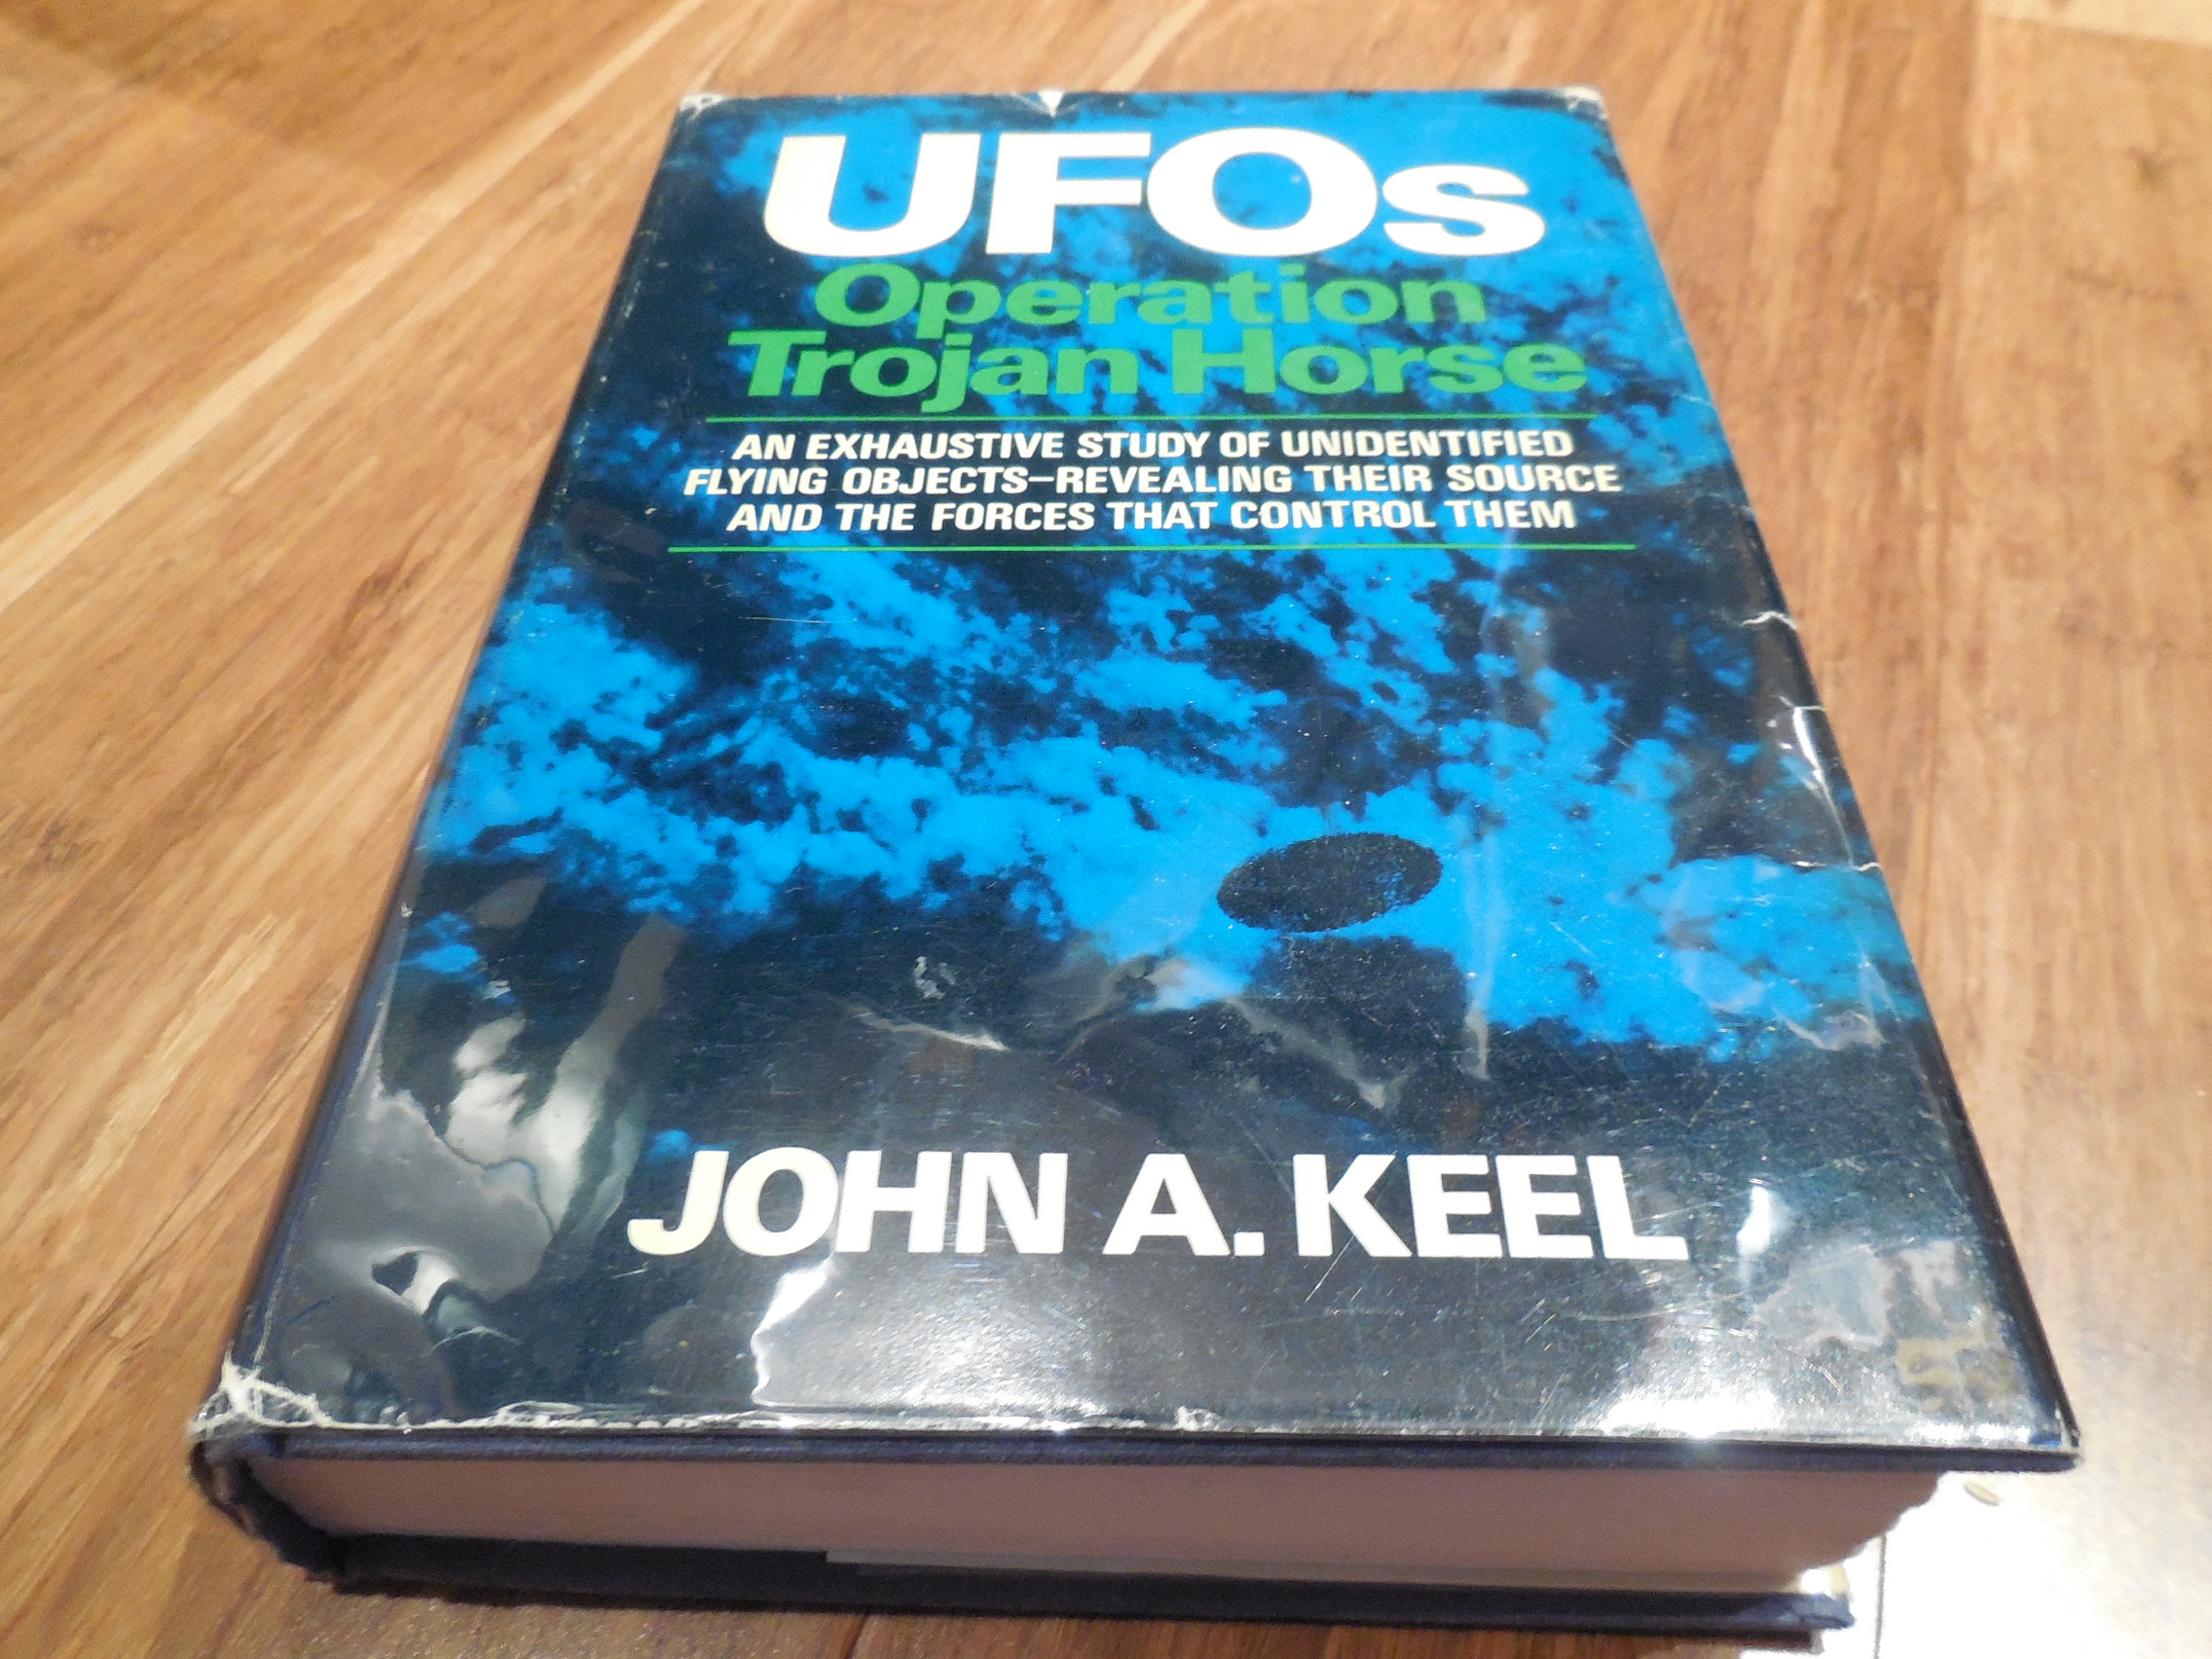 UFOS - Operation Trojan Horse : An Exhaustive Study of Unidentified Flying Objects - Revealing Their Source and the Forces That Control Them